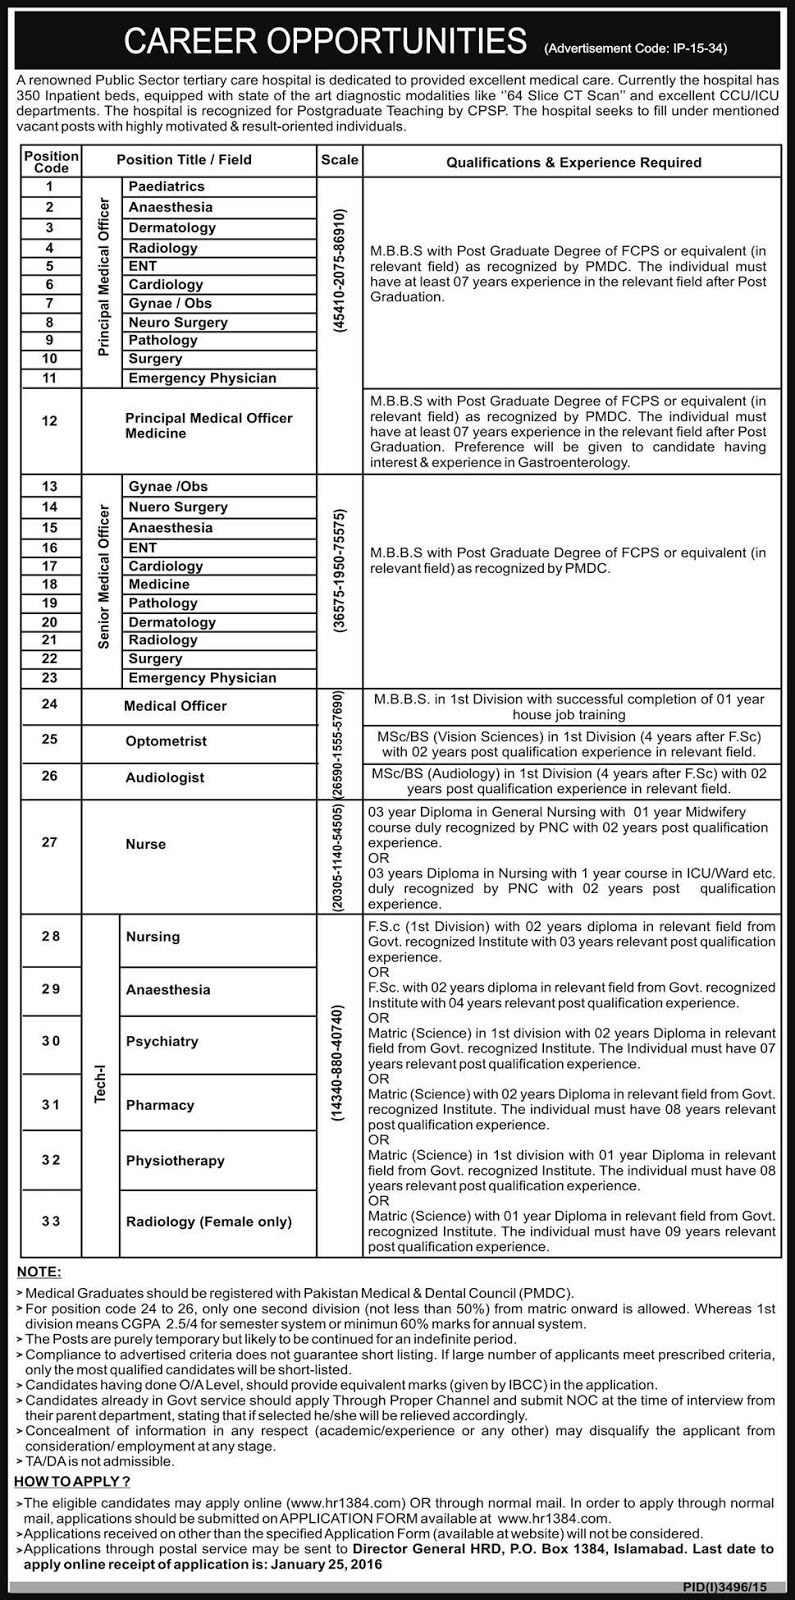 FCPS, MBBS, Nurses and paramedical staff Jobs in Government Hospital Pakistan